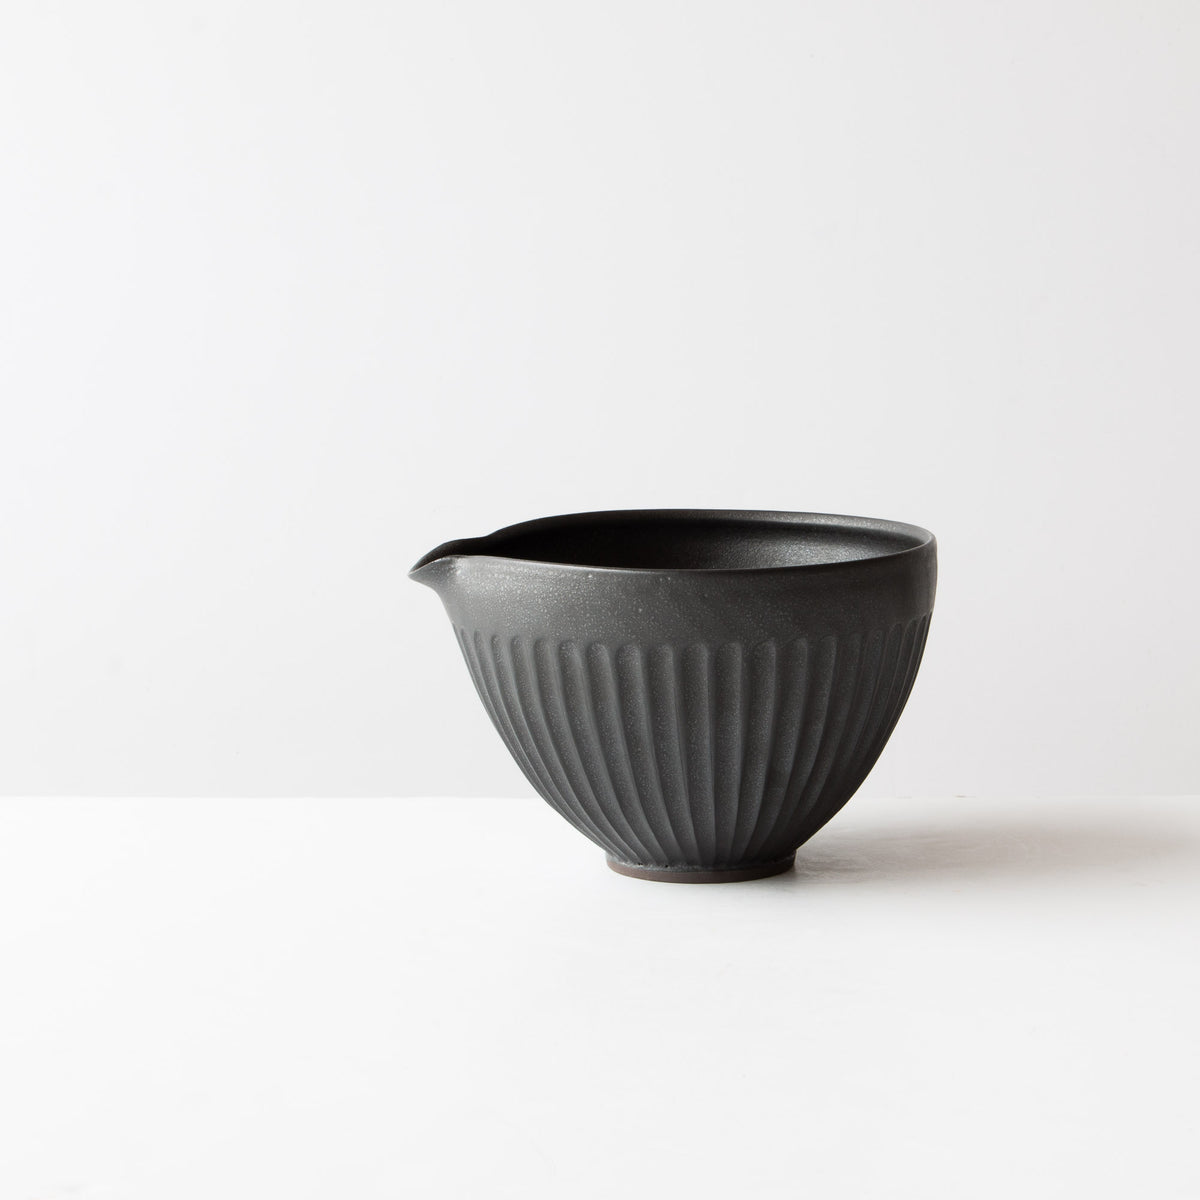 Black - Large Handmade Ceramic Mixing / Batter Bowl - Groove Pattern - Sold by Chic & Basta